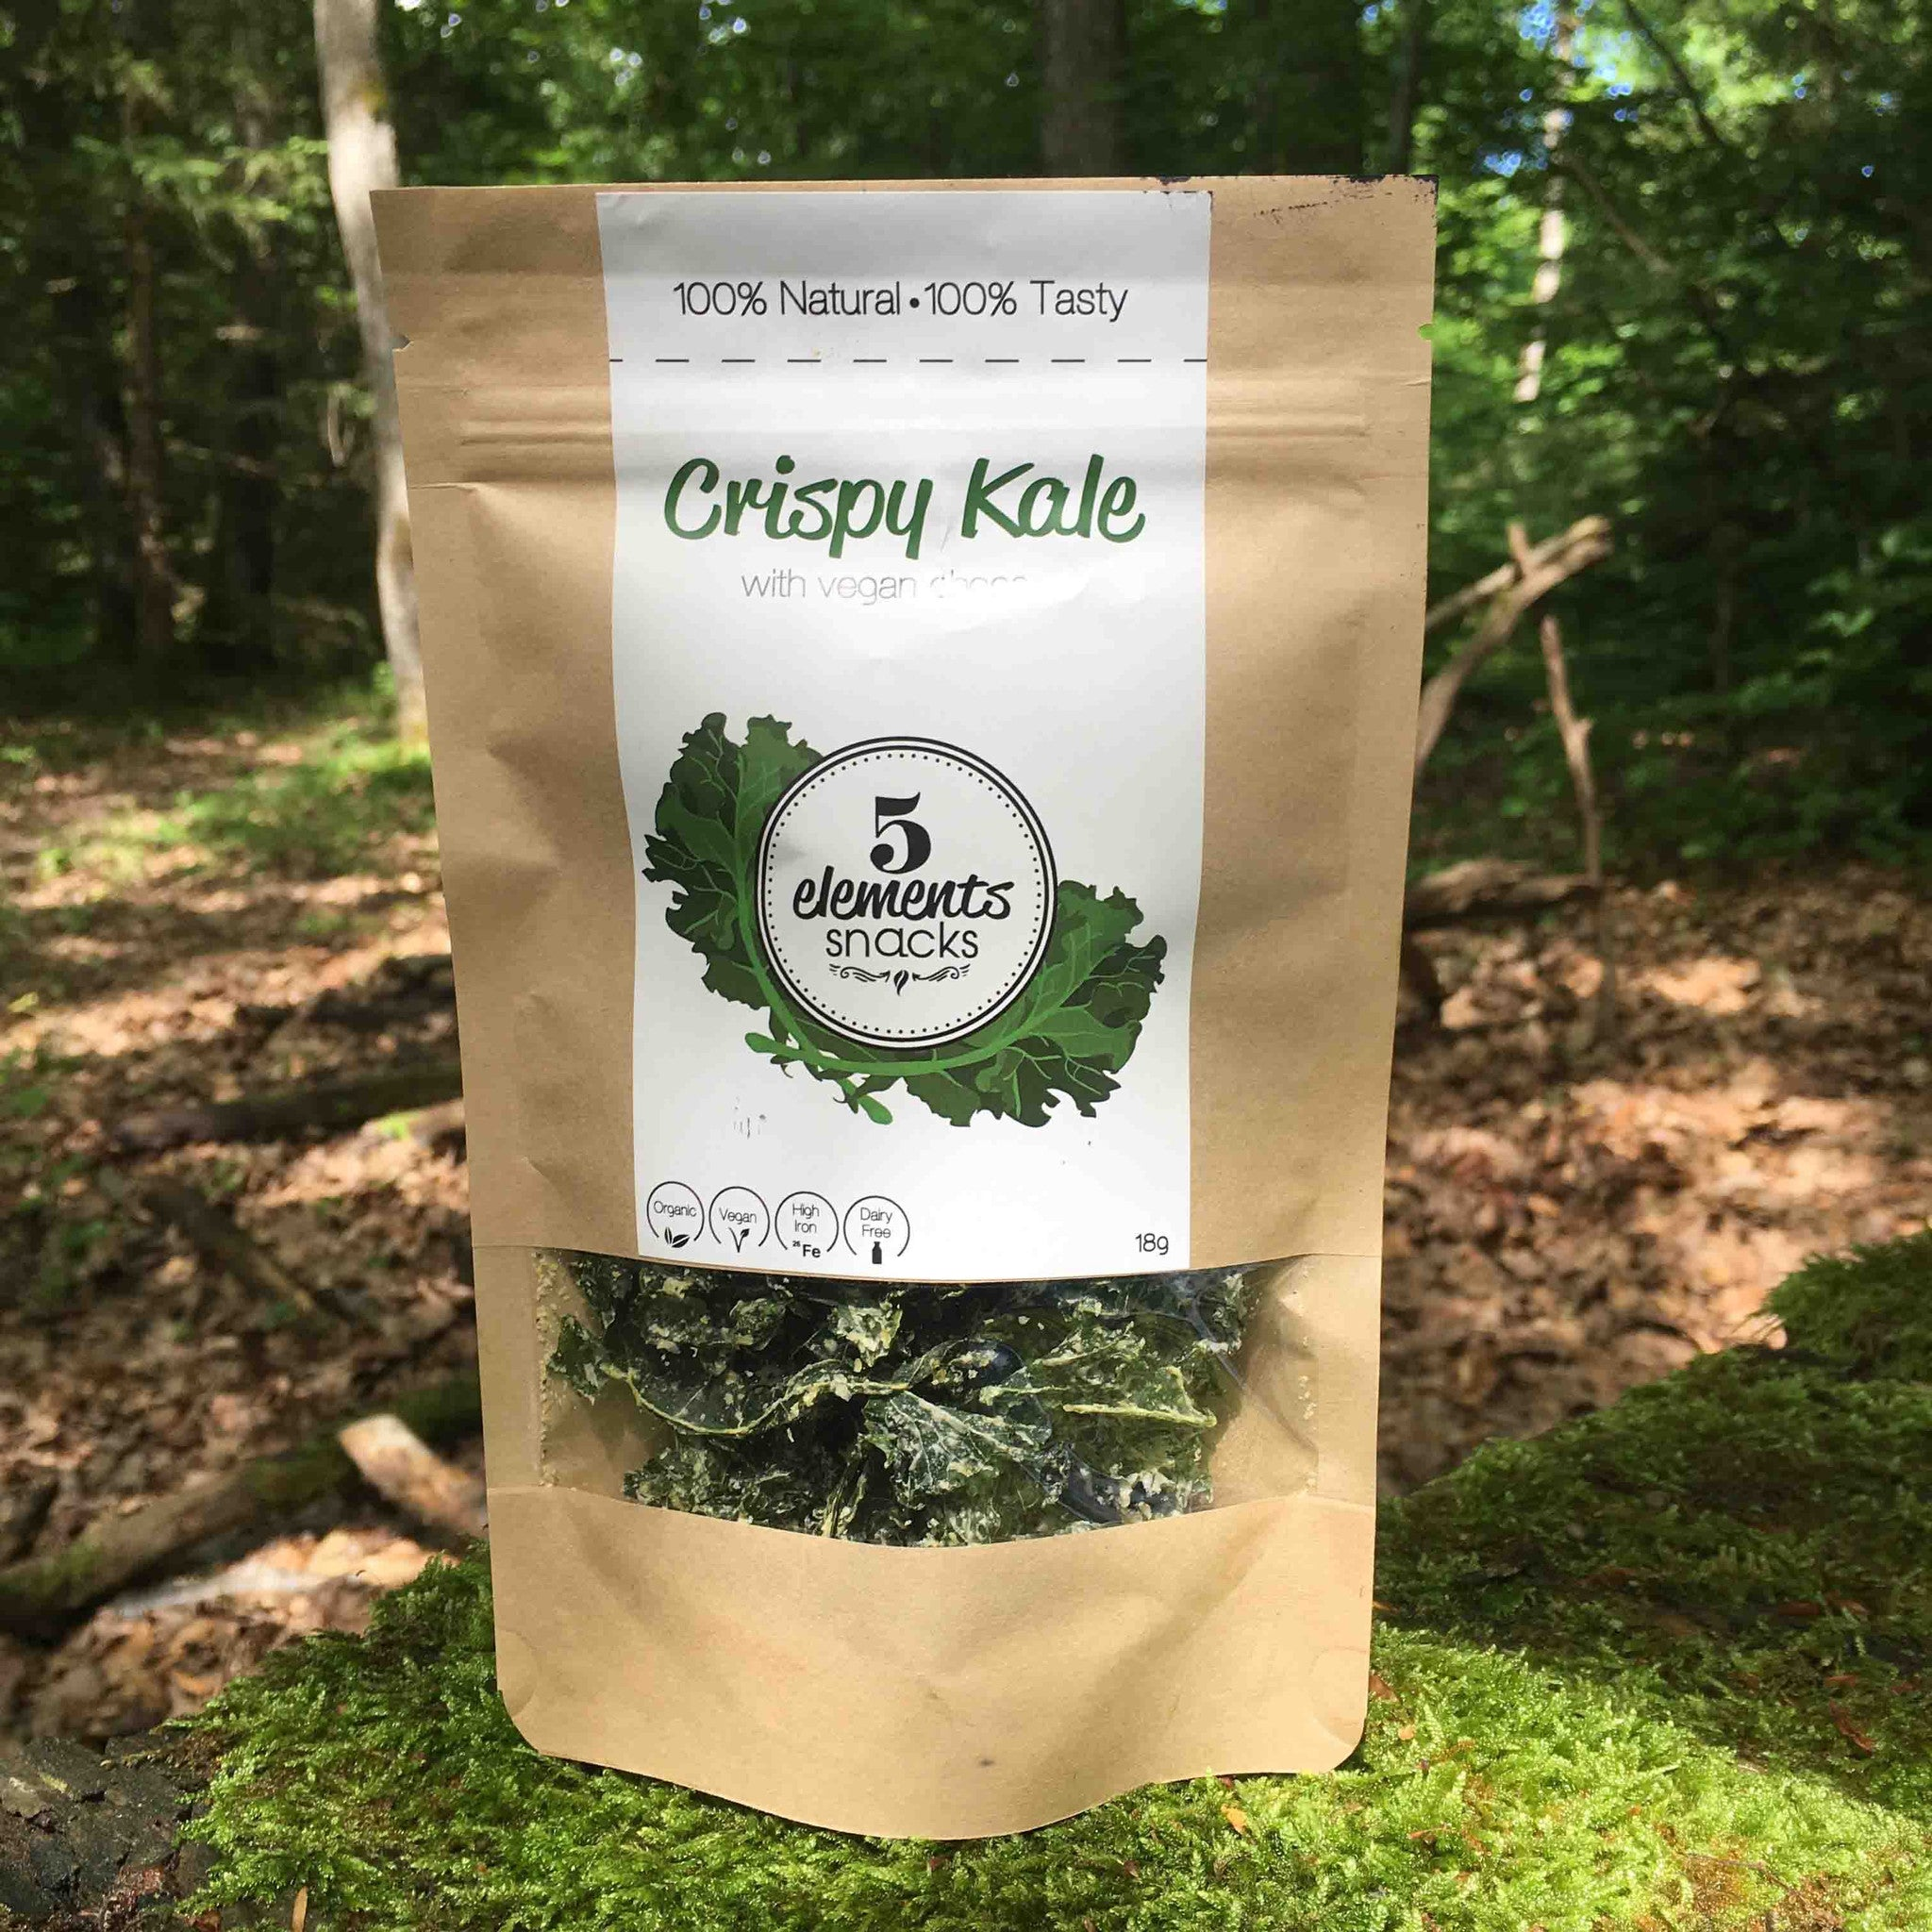 Crispy Kale with Vegan Cheese  - The Green Medicine